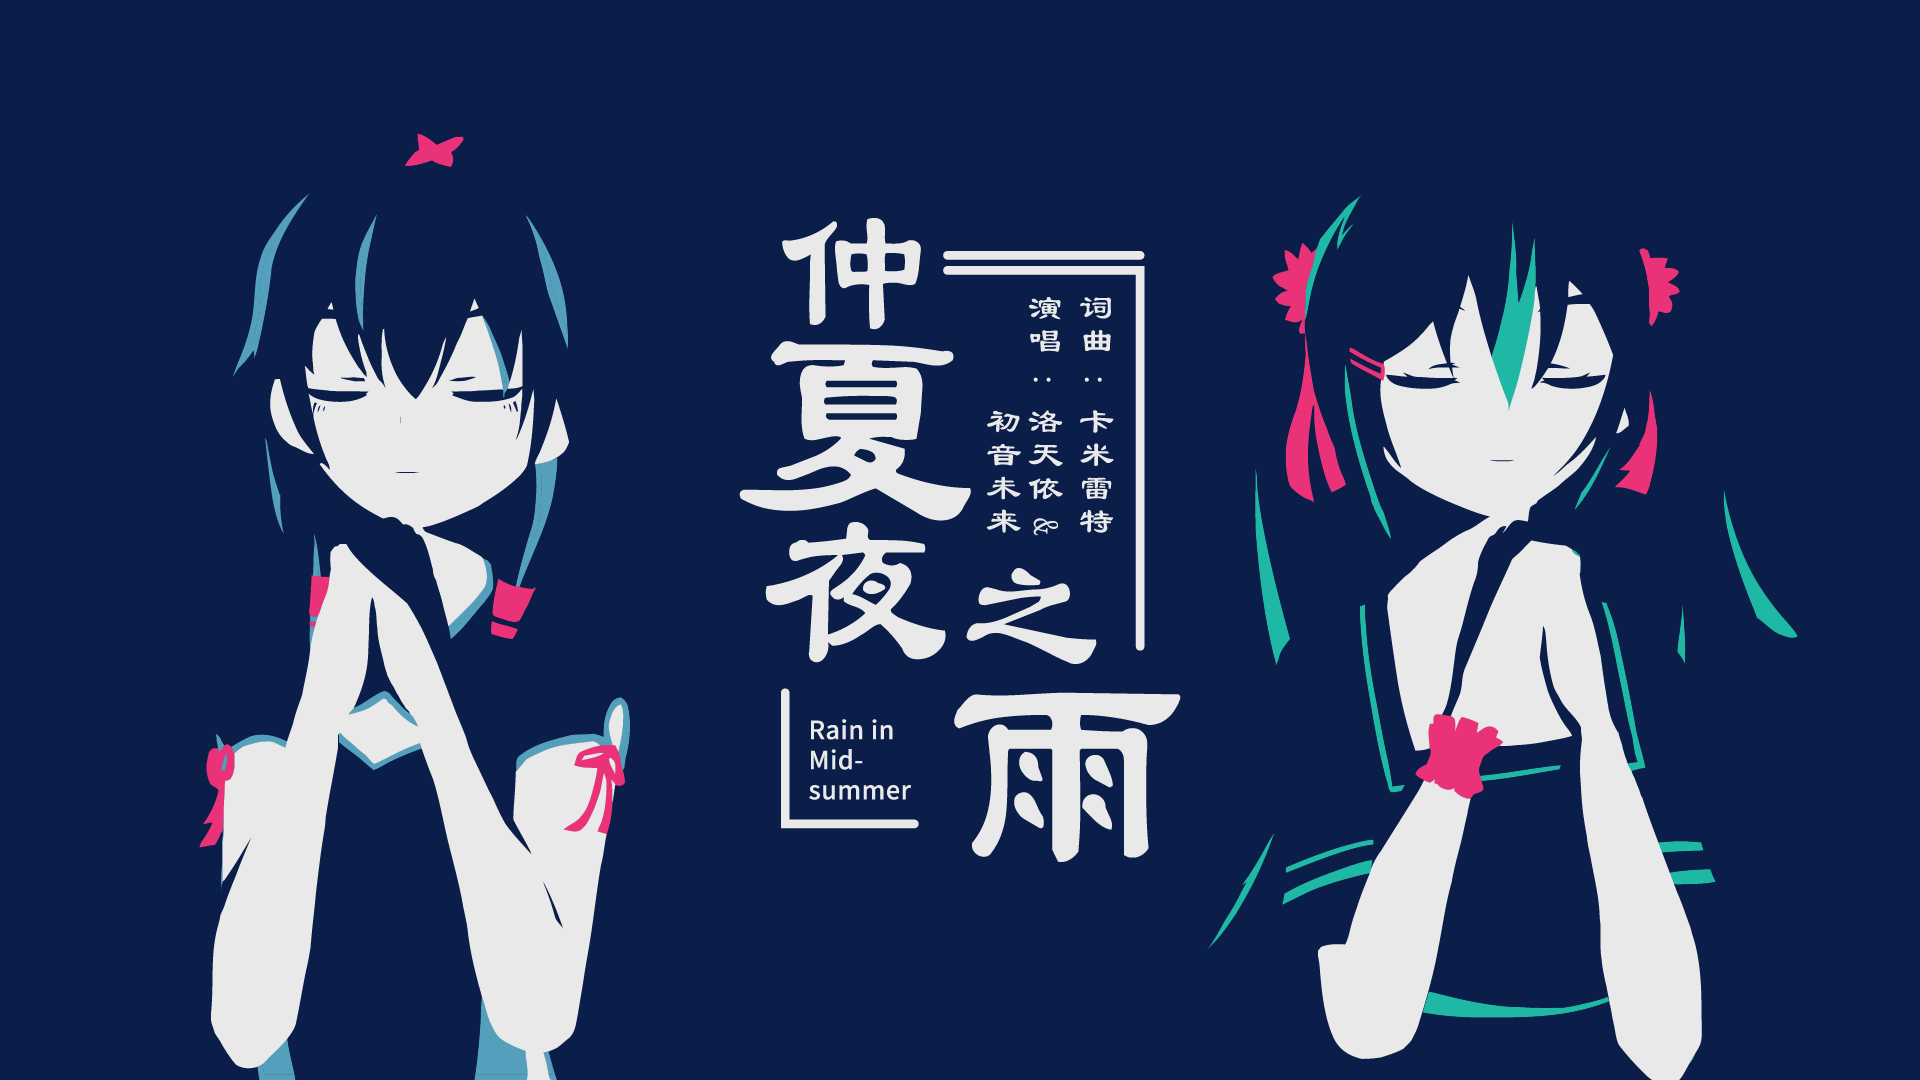 原创歌曲《仲夏夜之雨》 - VOCALOID, Aegisub, Adobe Photoshop, Adobe Illustrator, Adobe Audition, Adobe After Effects - music-remix, video, paint-illustrate, selection, portfolio